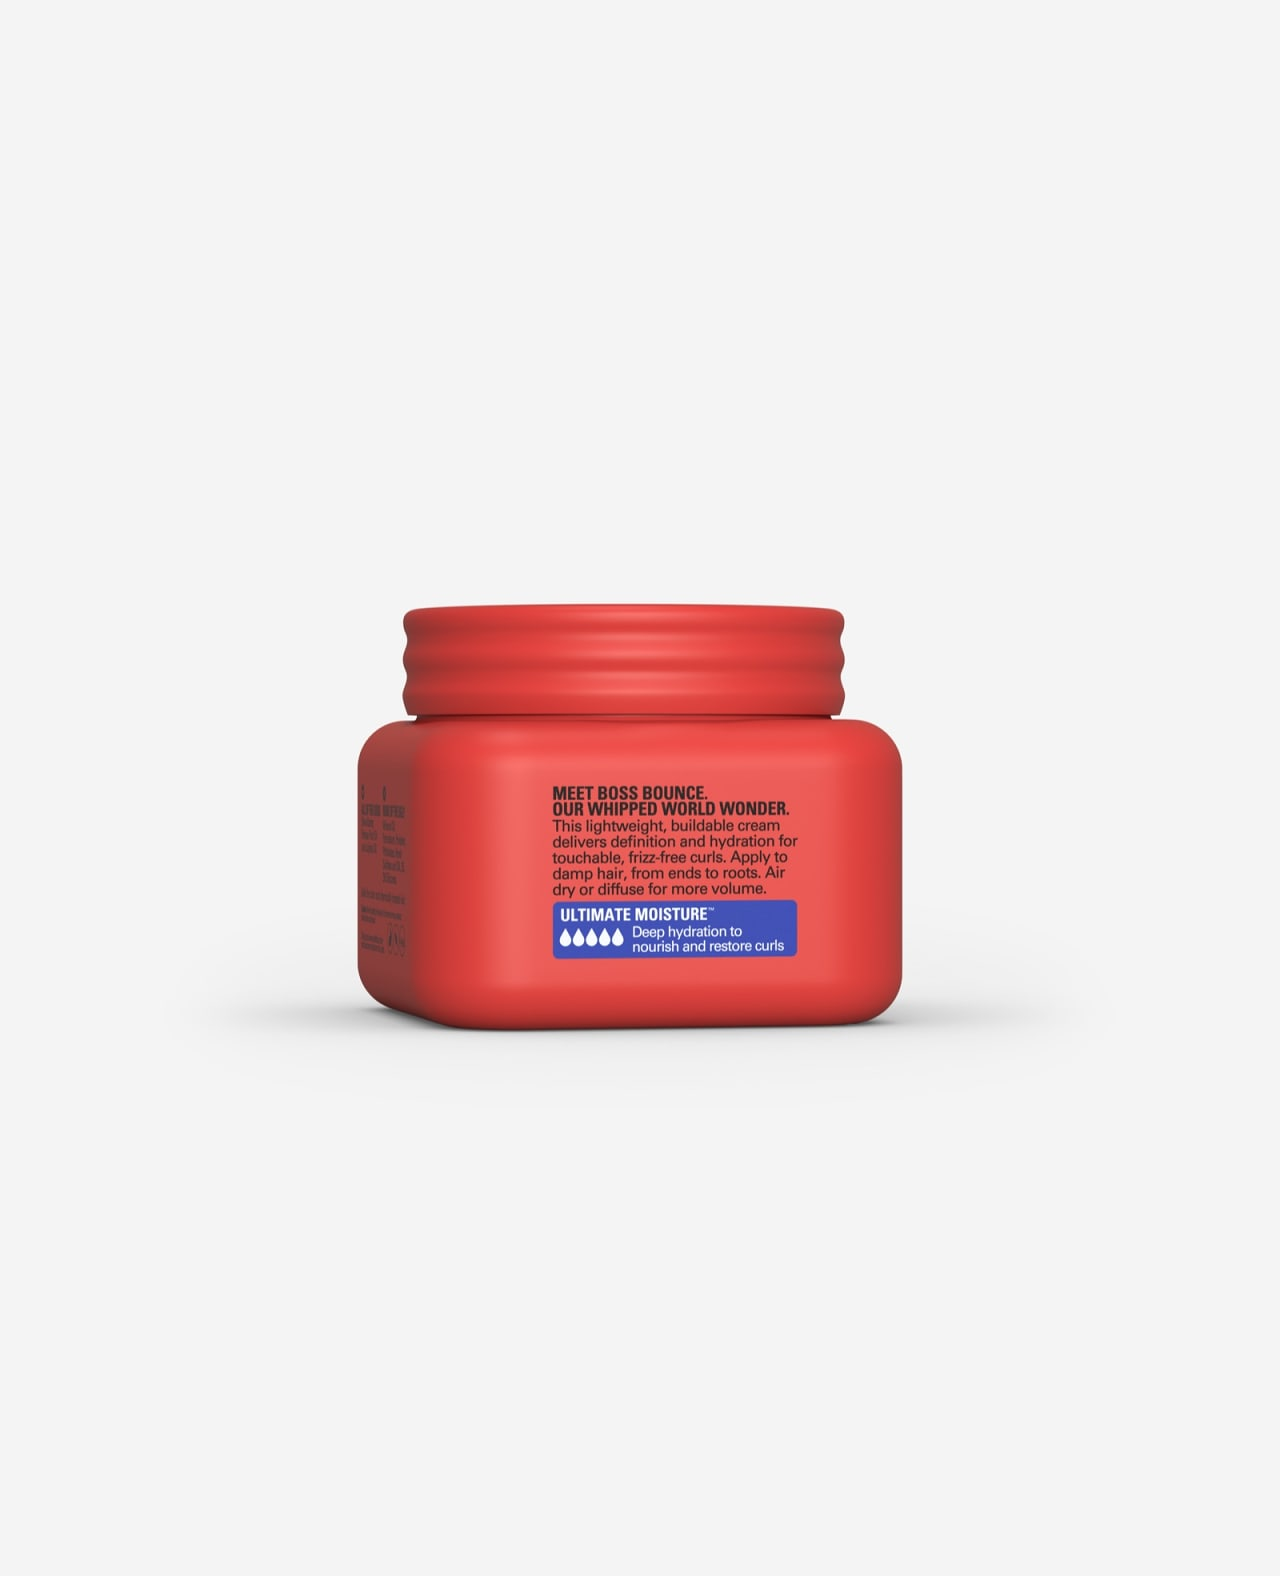 Twist Boss Bounce Buildable Styling Cream Ultimate Moisture  for Curls 8.5 oz. description side of container